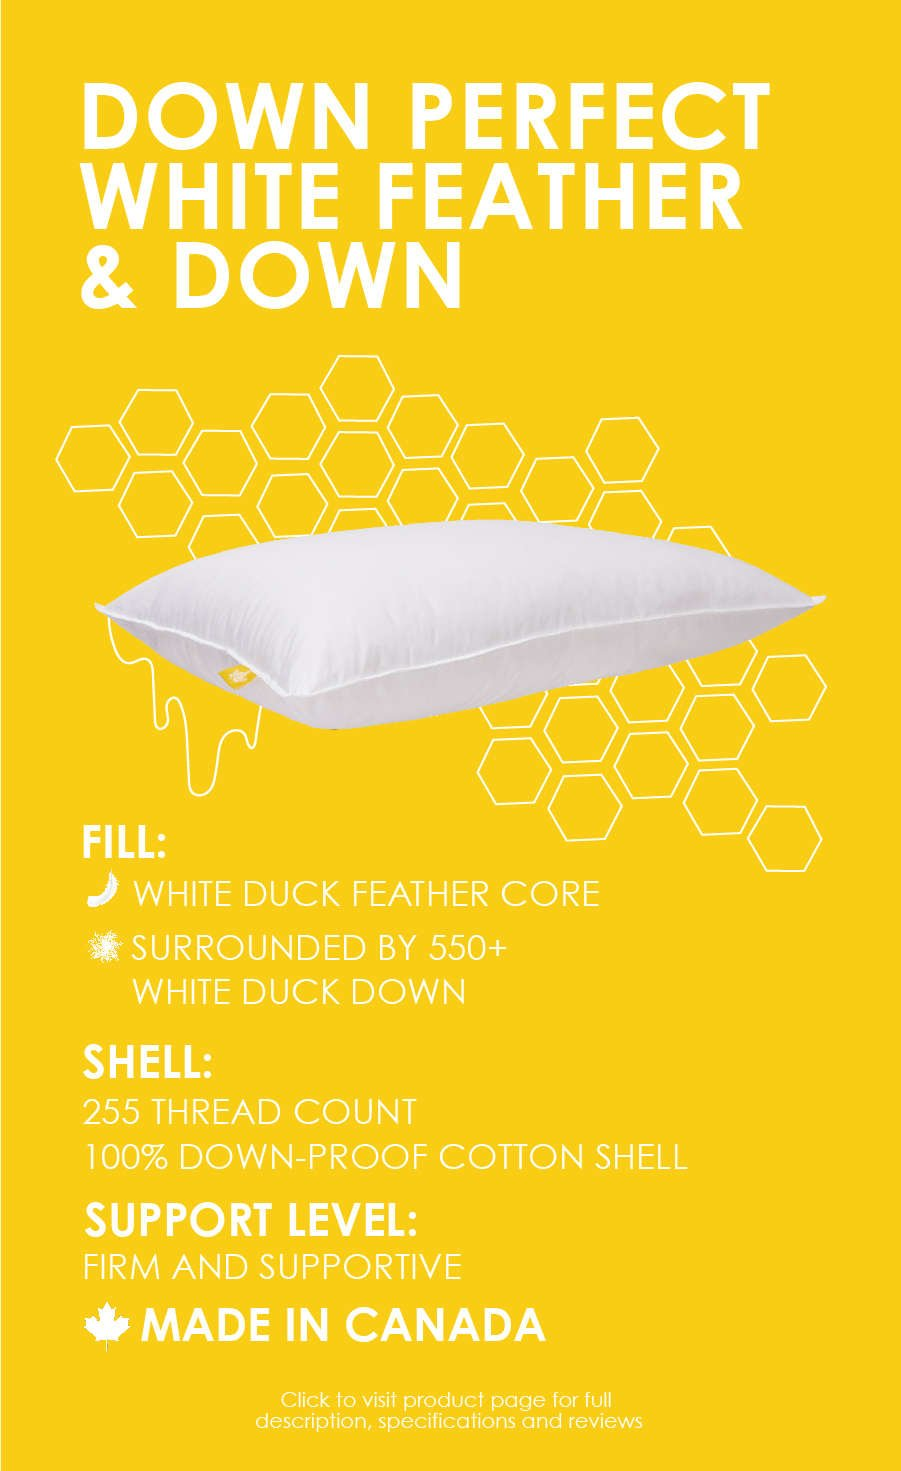 white duck down and feather pillow